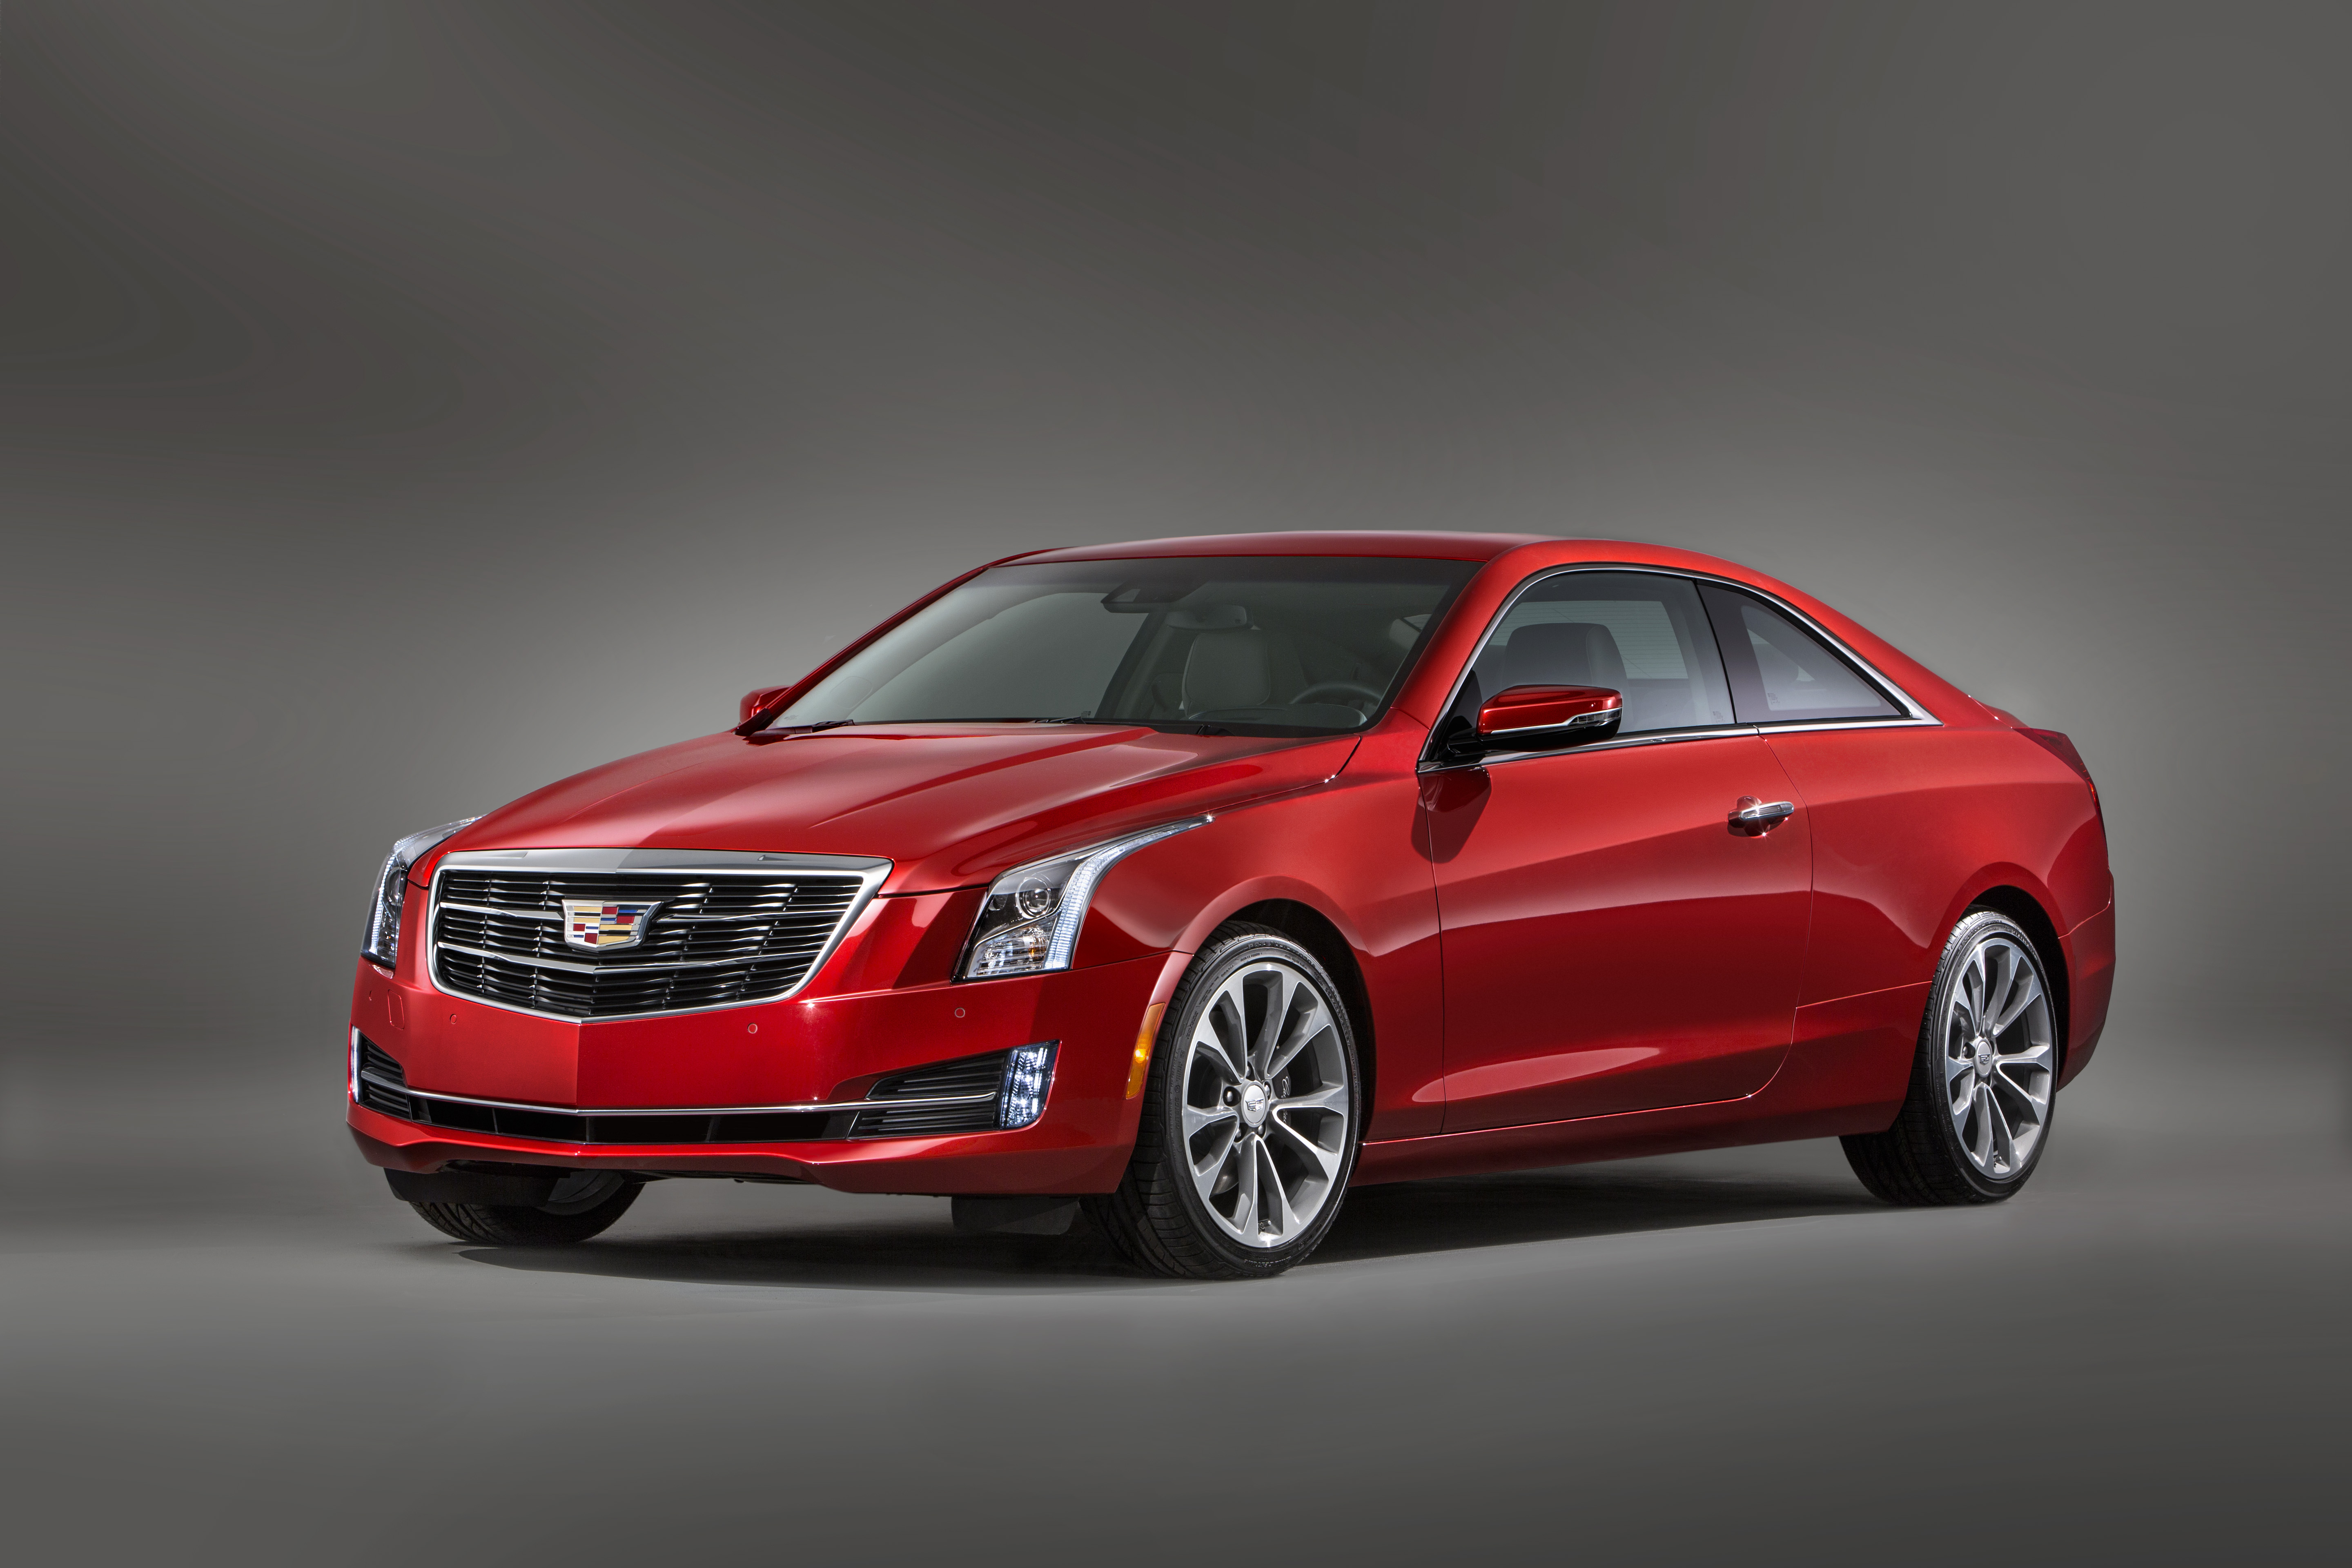 Cadillac Ats Coupe And Escalade To Make European Debut At Geneva